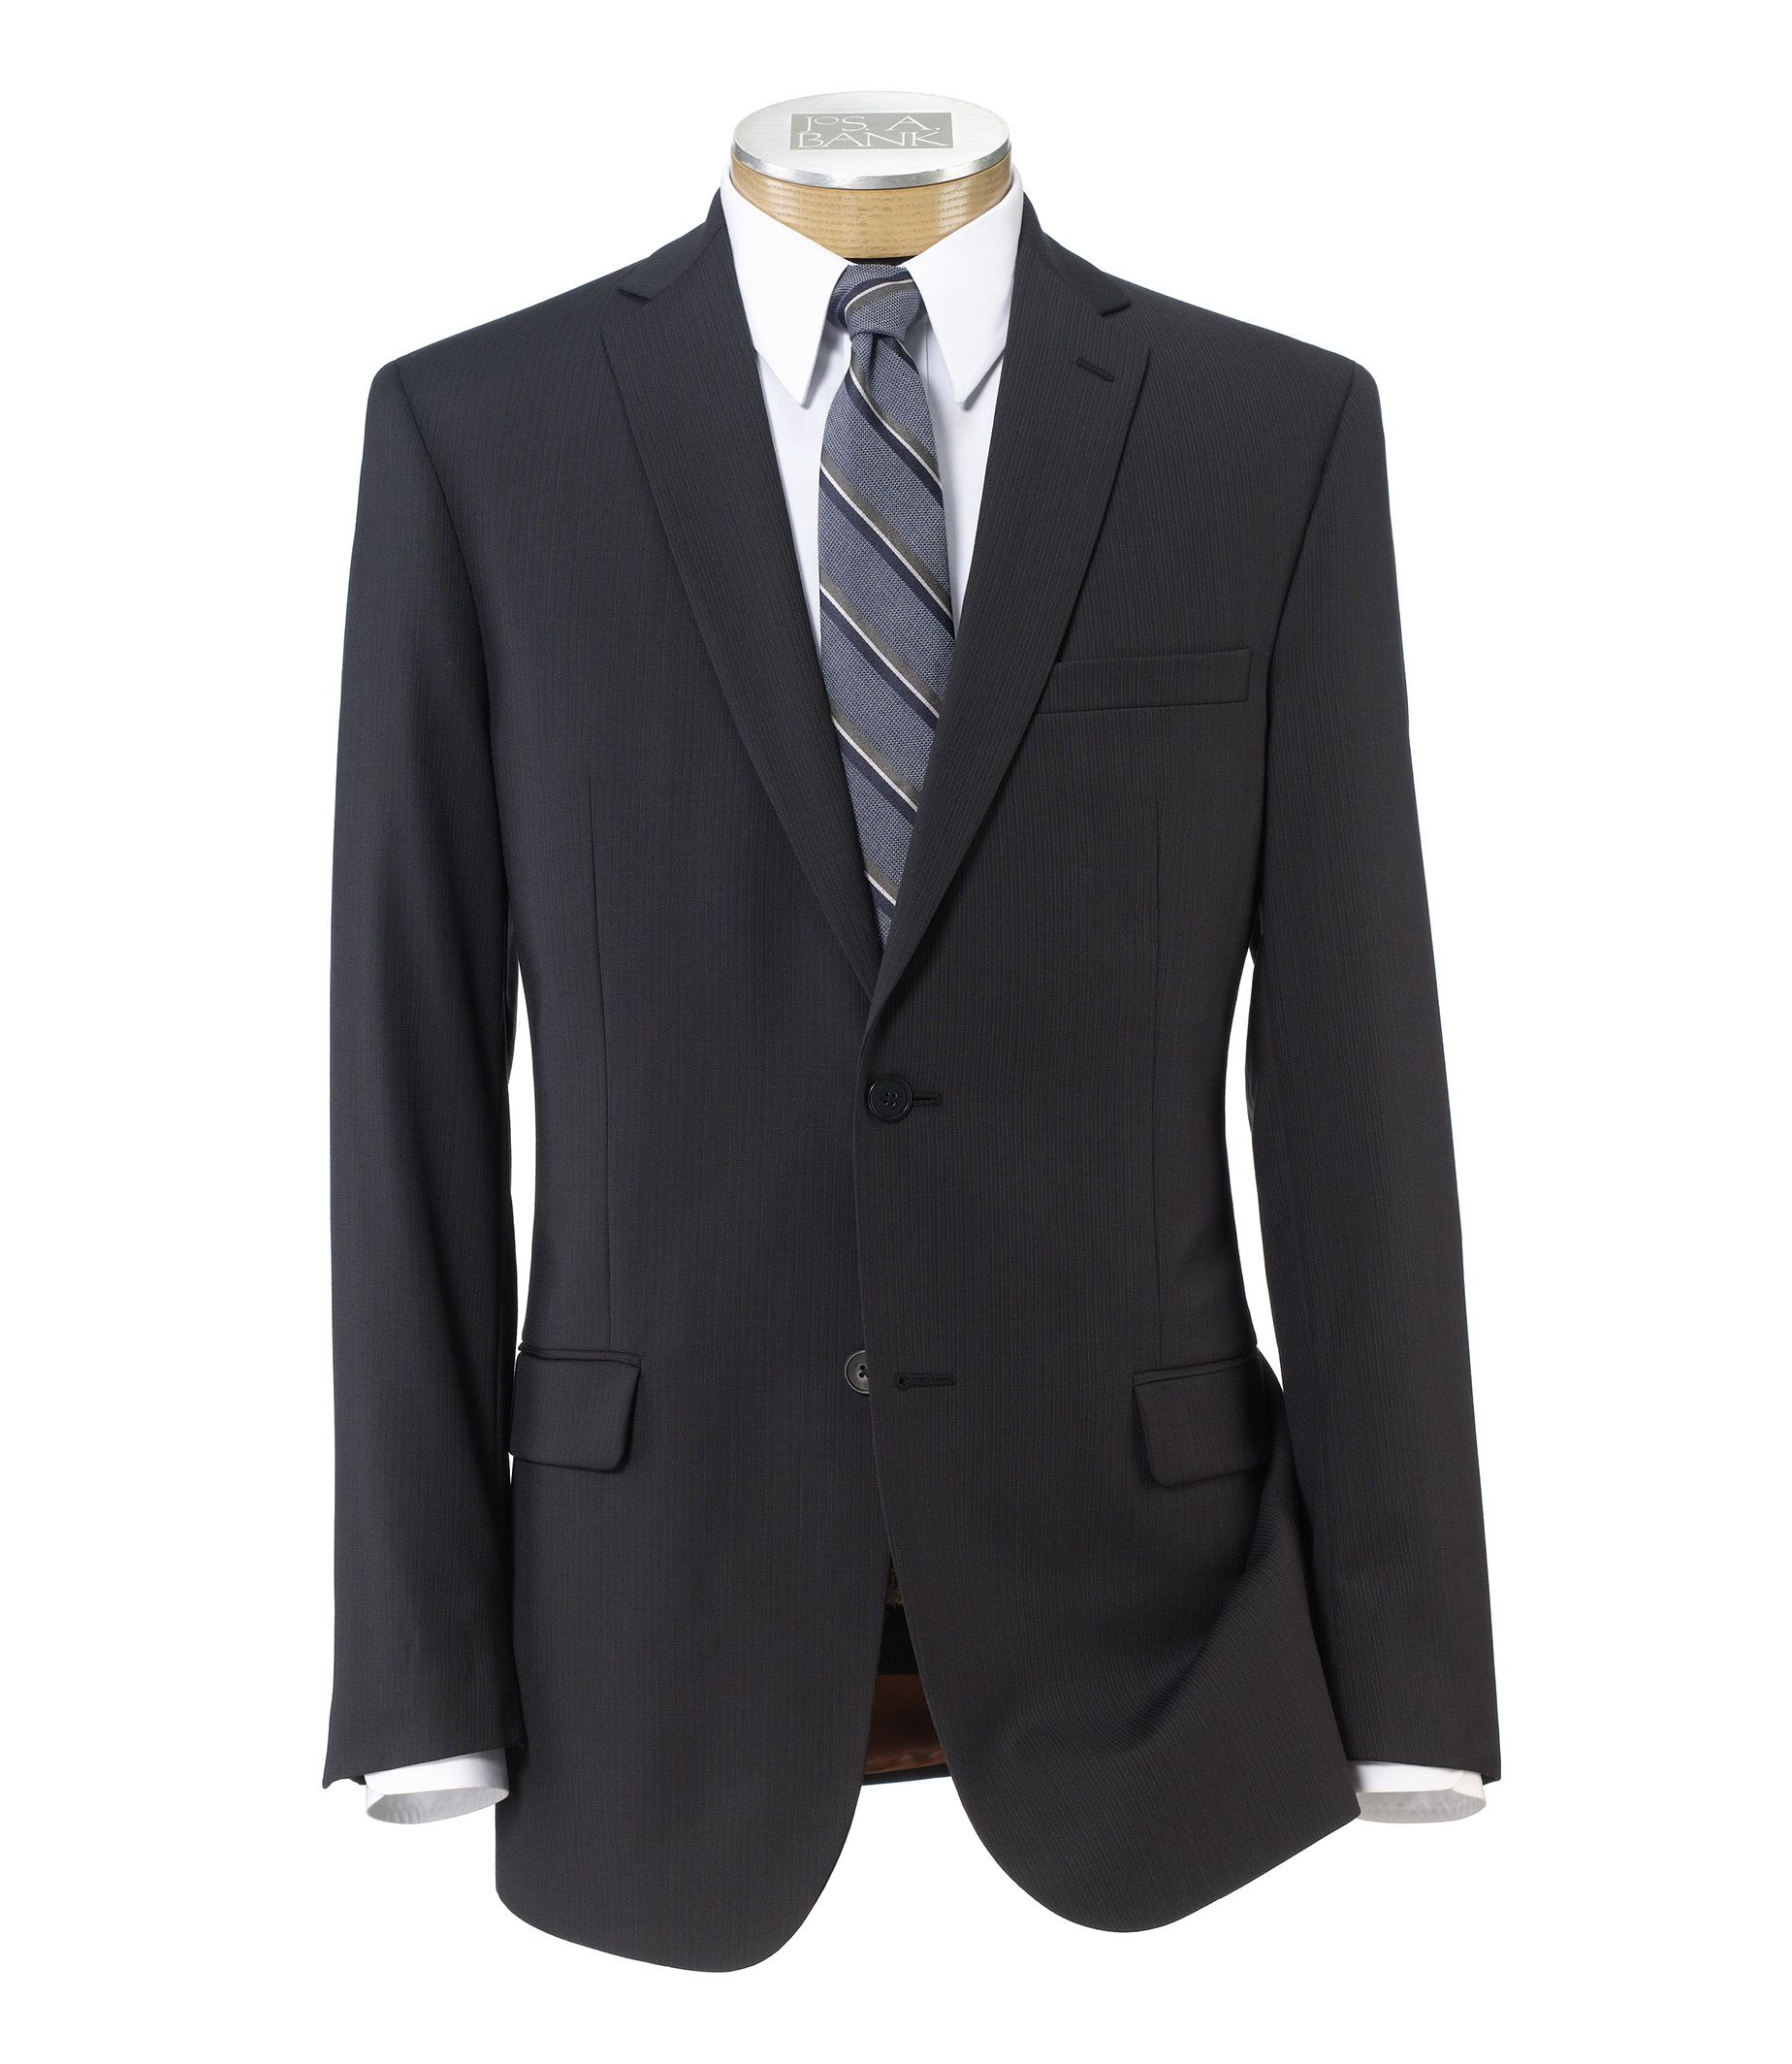 Joseph Slim Fit 2-Button Suits with Plain Front Trousers- Charcoal, Rust Stripe